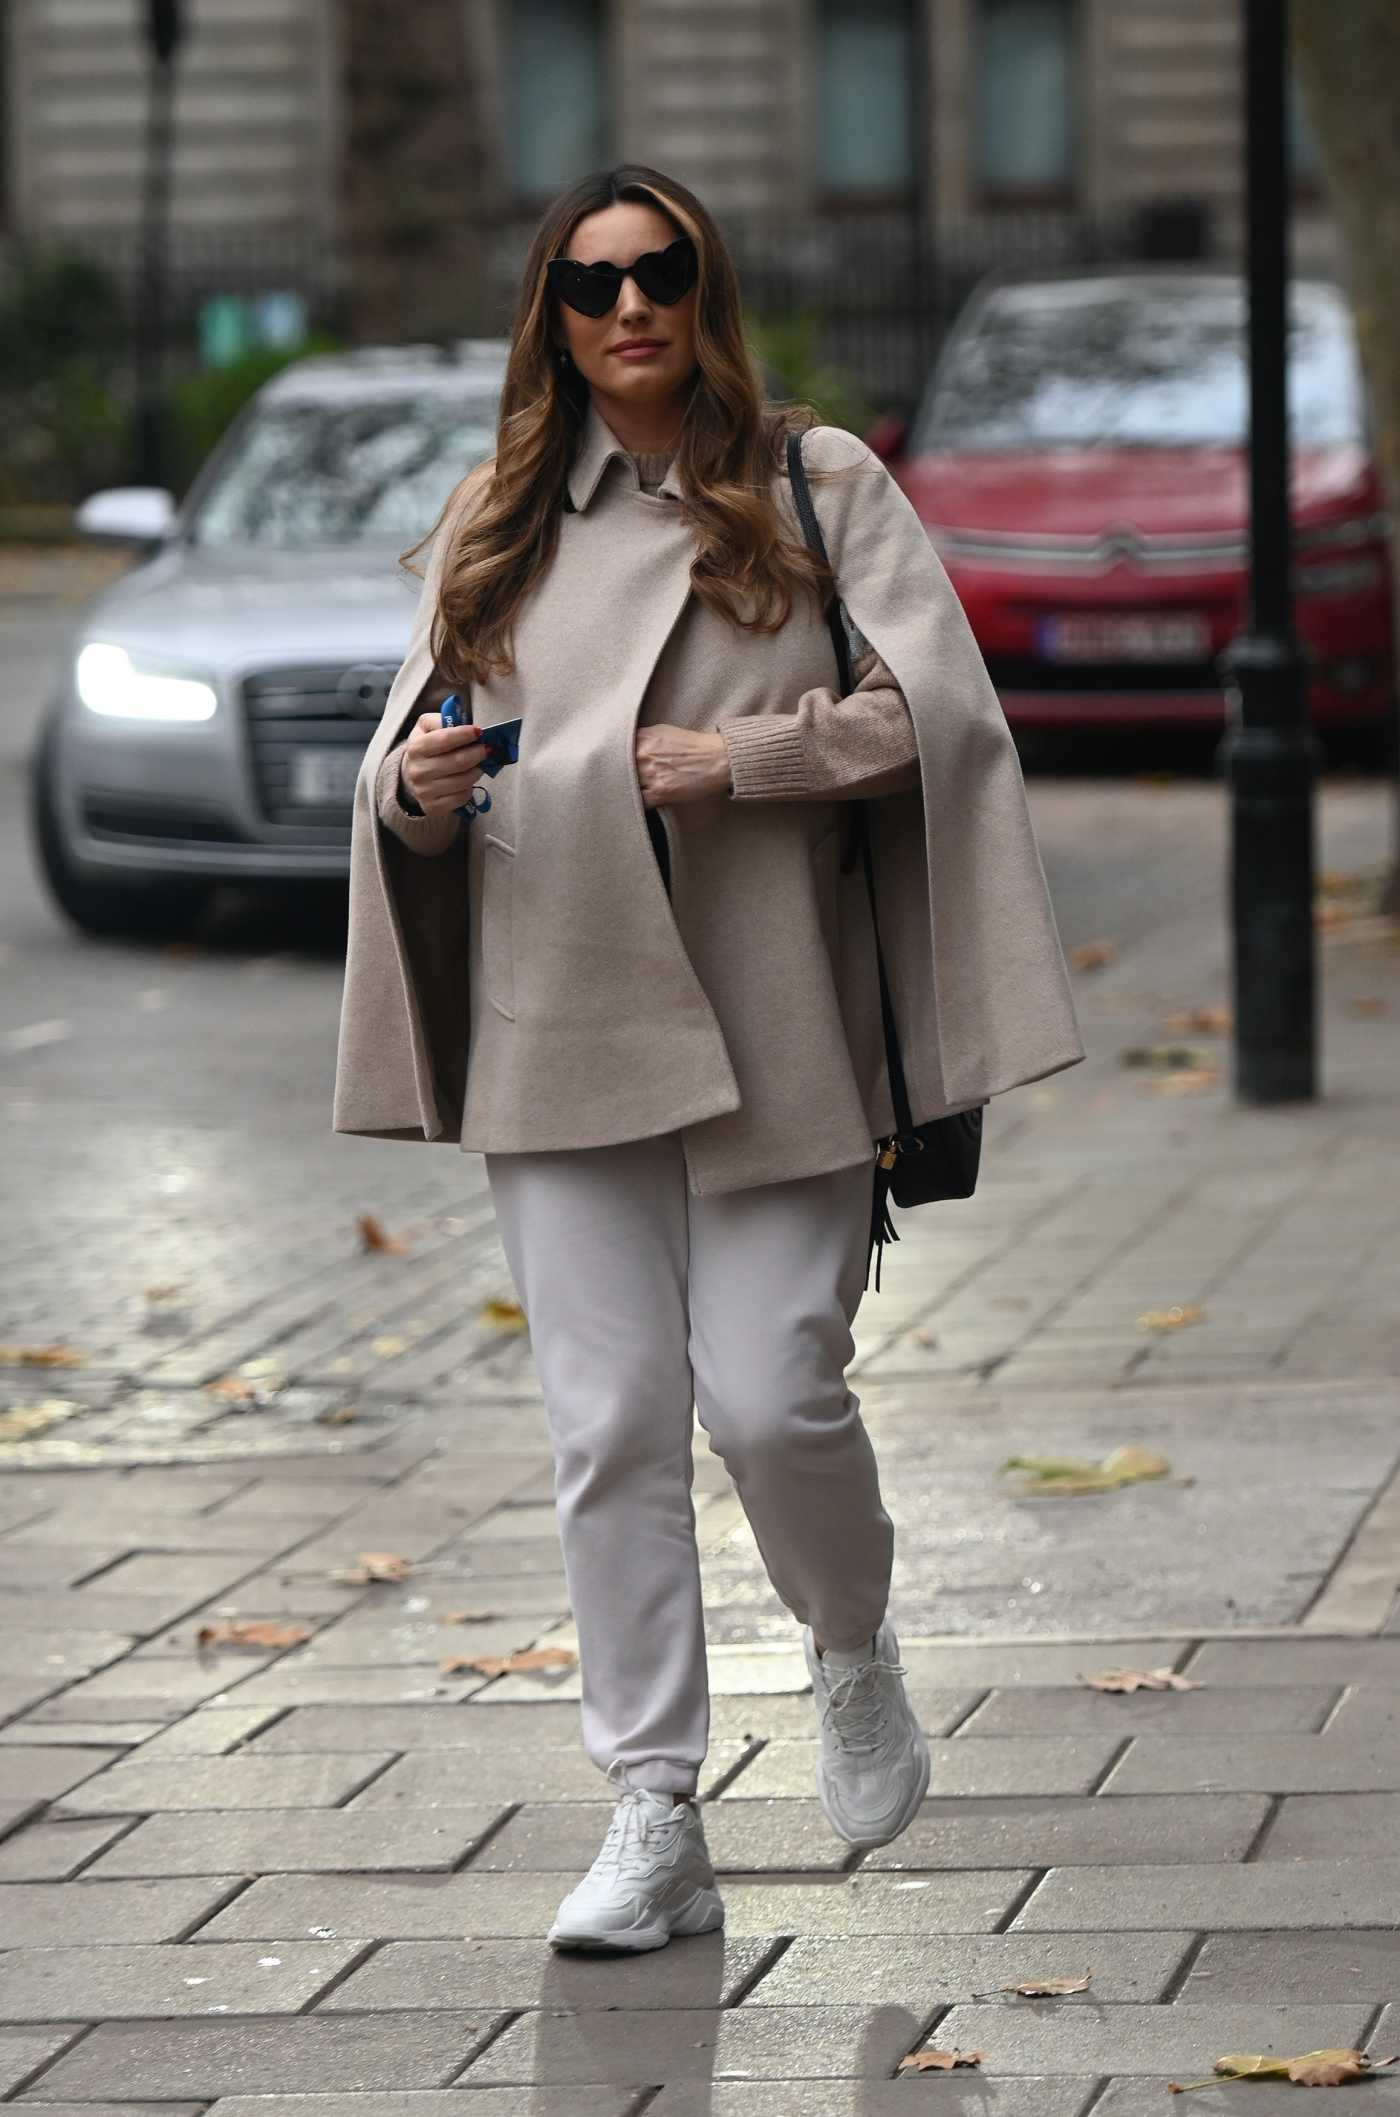 Kelly Brook in a White Sneakers Arrives at the Global Radio in London 11/18/2020